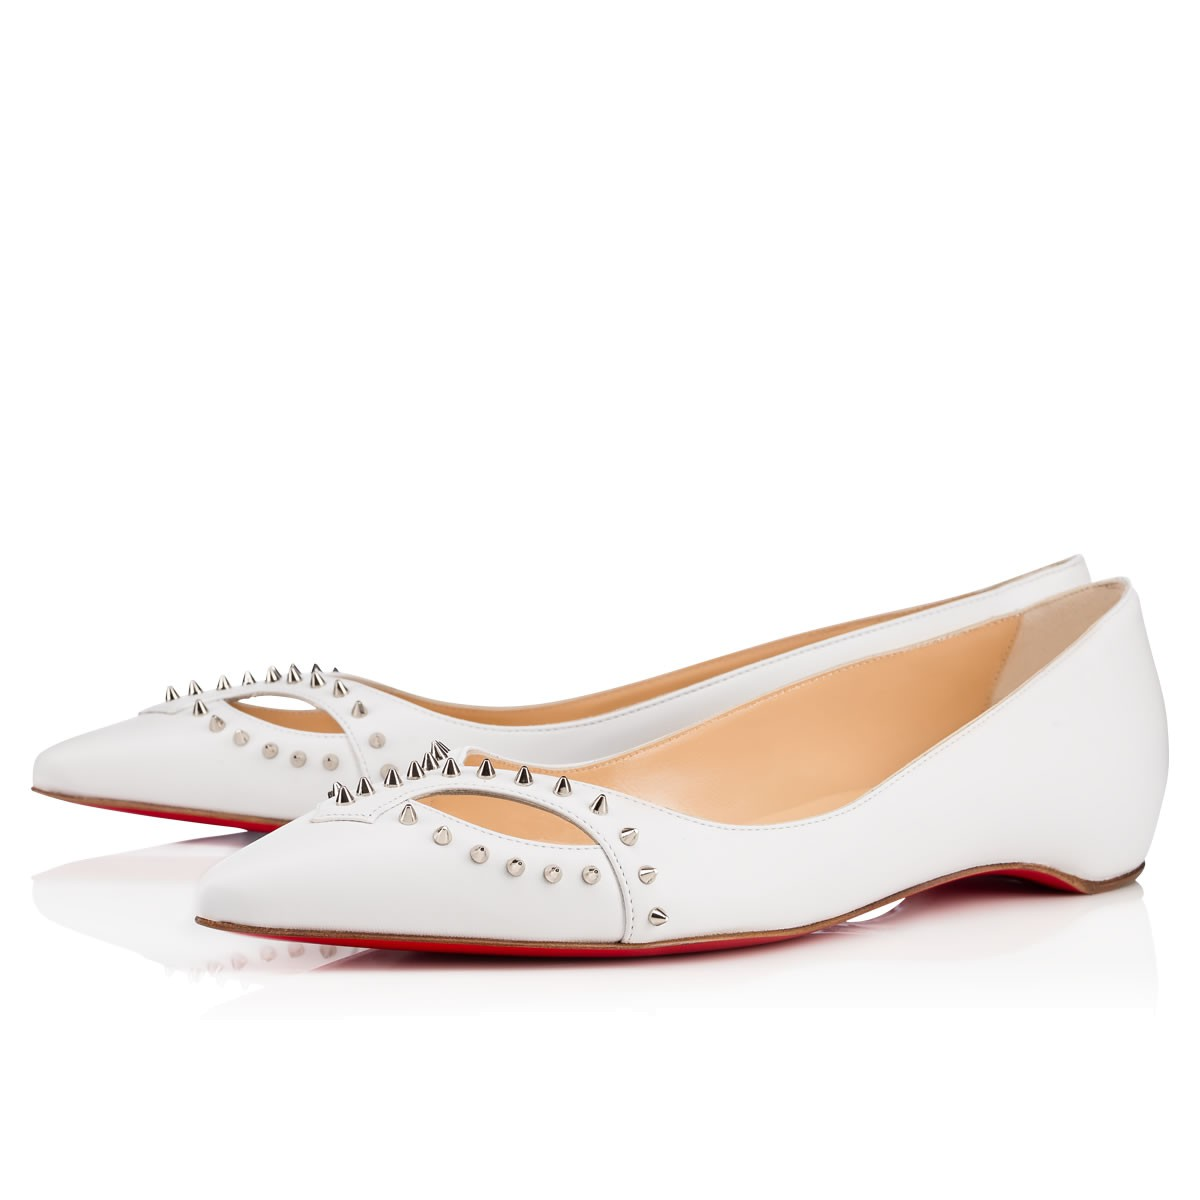 Catch Mex Flat White/Silver Leather - Women Shoes - Christian Louboutin